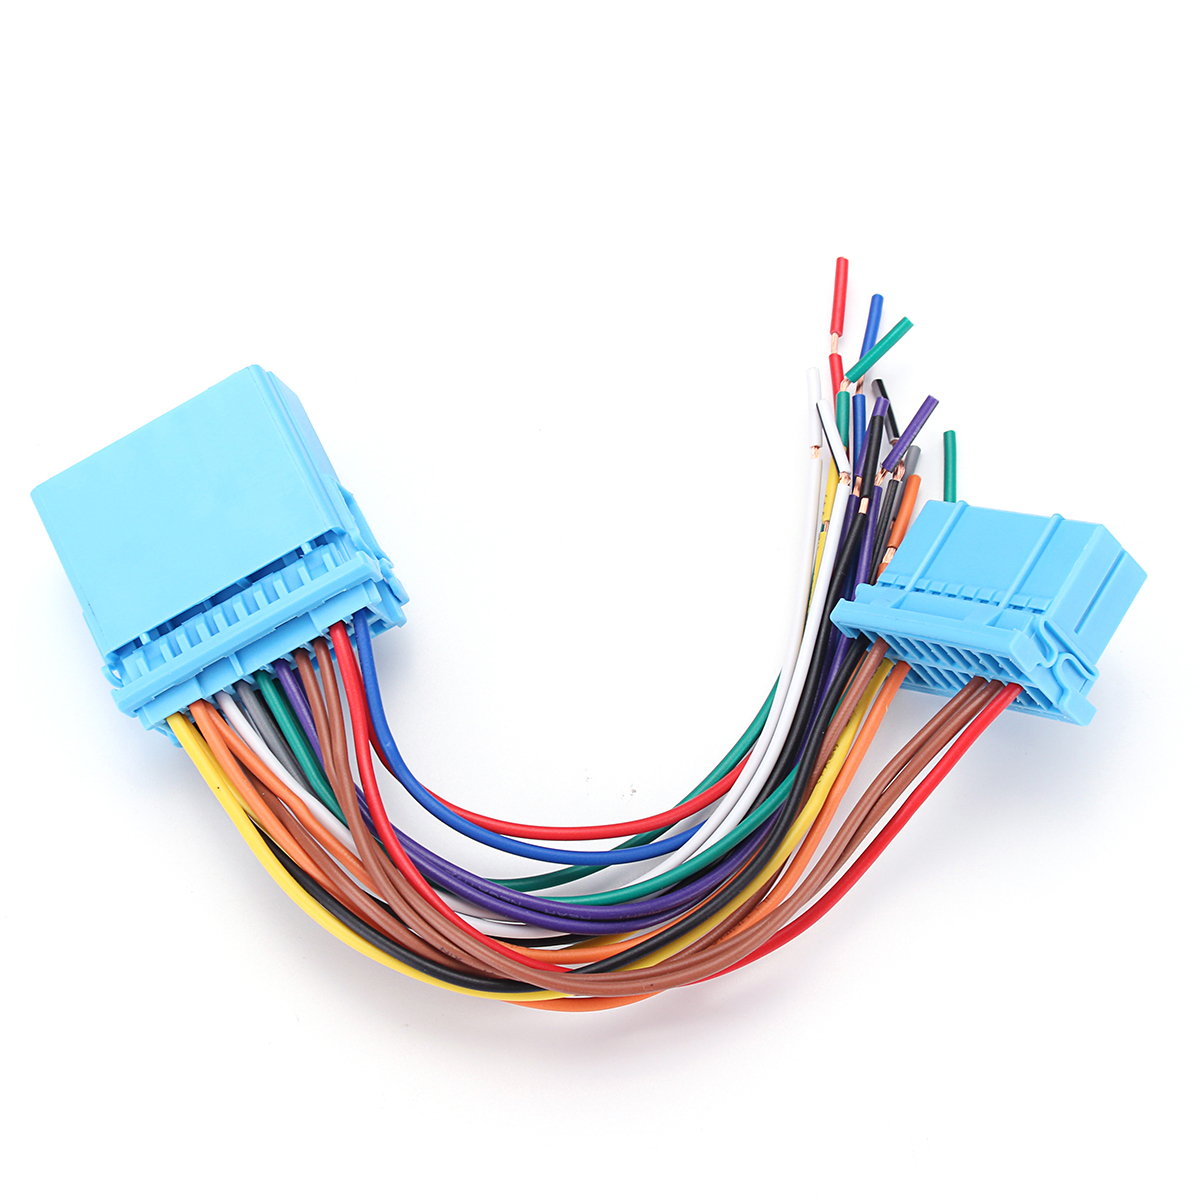 Accord Wire Harness on 3 wire switch, 3 wire light, 3 wire antenna, 3 wire control, 3 wire module, 3 wire regulator, 3 wire motor, 3 wire wheels, 3 wire lead, 3 wire fan, 3 wire wiring, 3 wire black, 3 wire alternator, 3 wire sensor, 3 wire power, 3 wire coil, 3 wire solenoid, 3 wire adapter, 3 wire lamp, 3 wire cable,